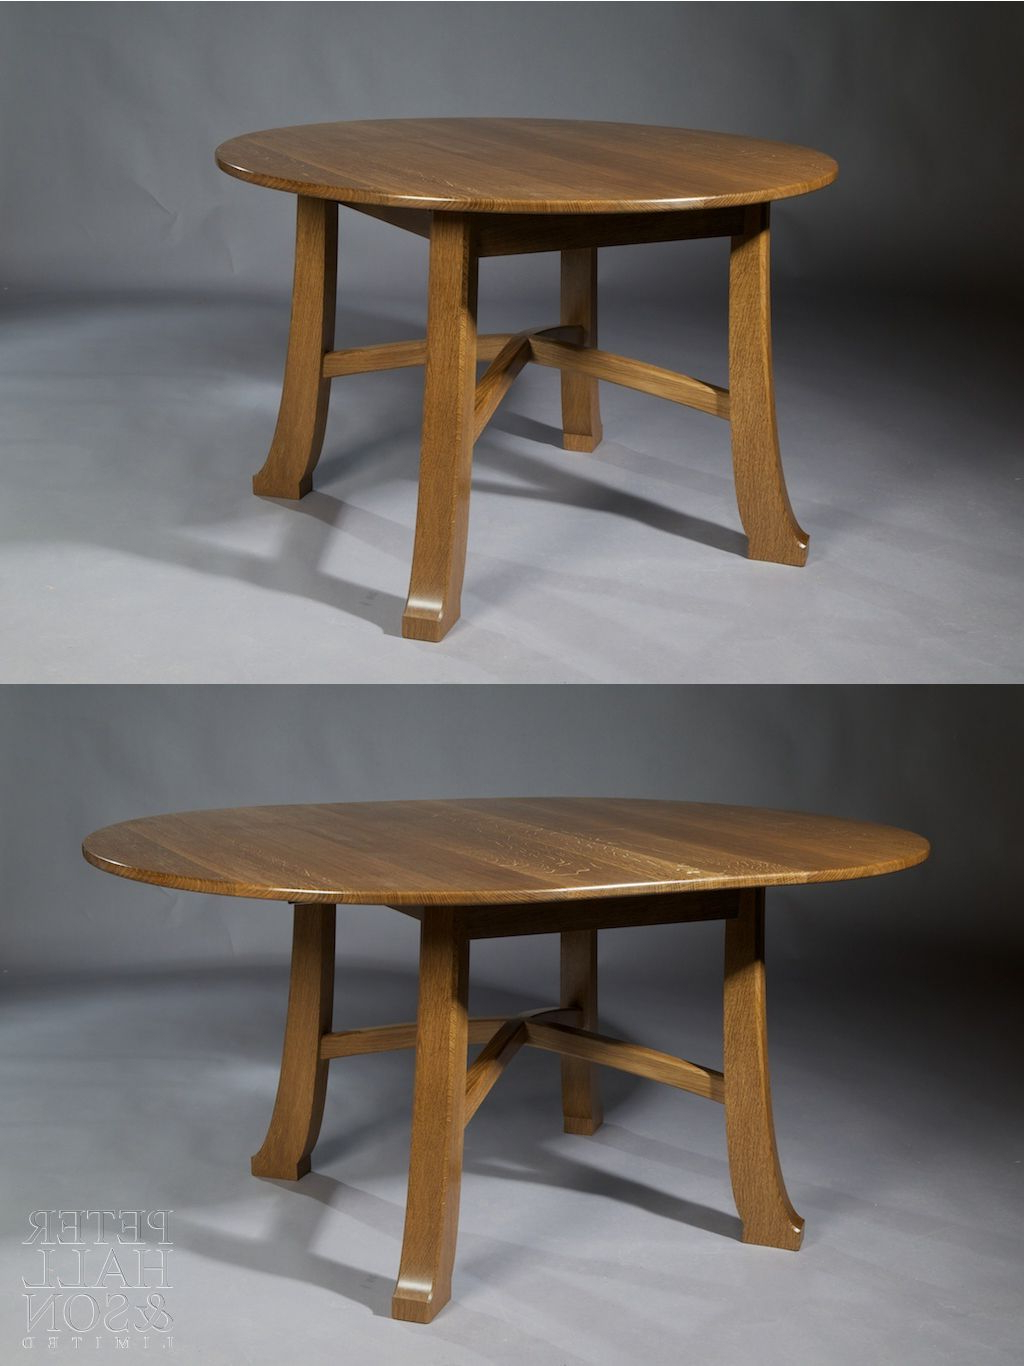 Fumed Oak Dining Tables With Regard To Best And Newest Extending 'pembroke' Table In Fumed Oak (View 10 of 25)